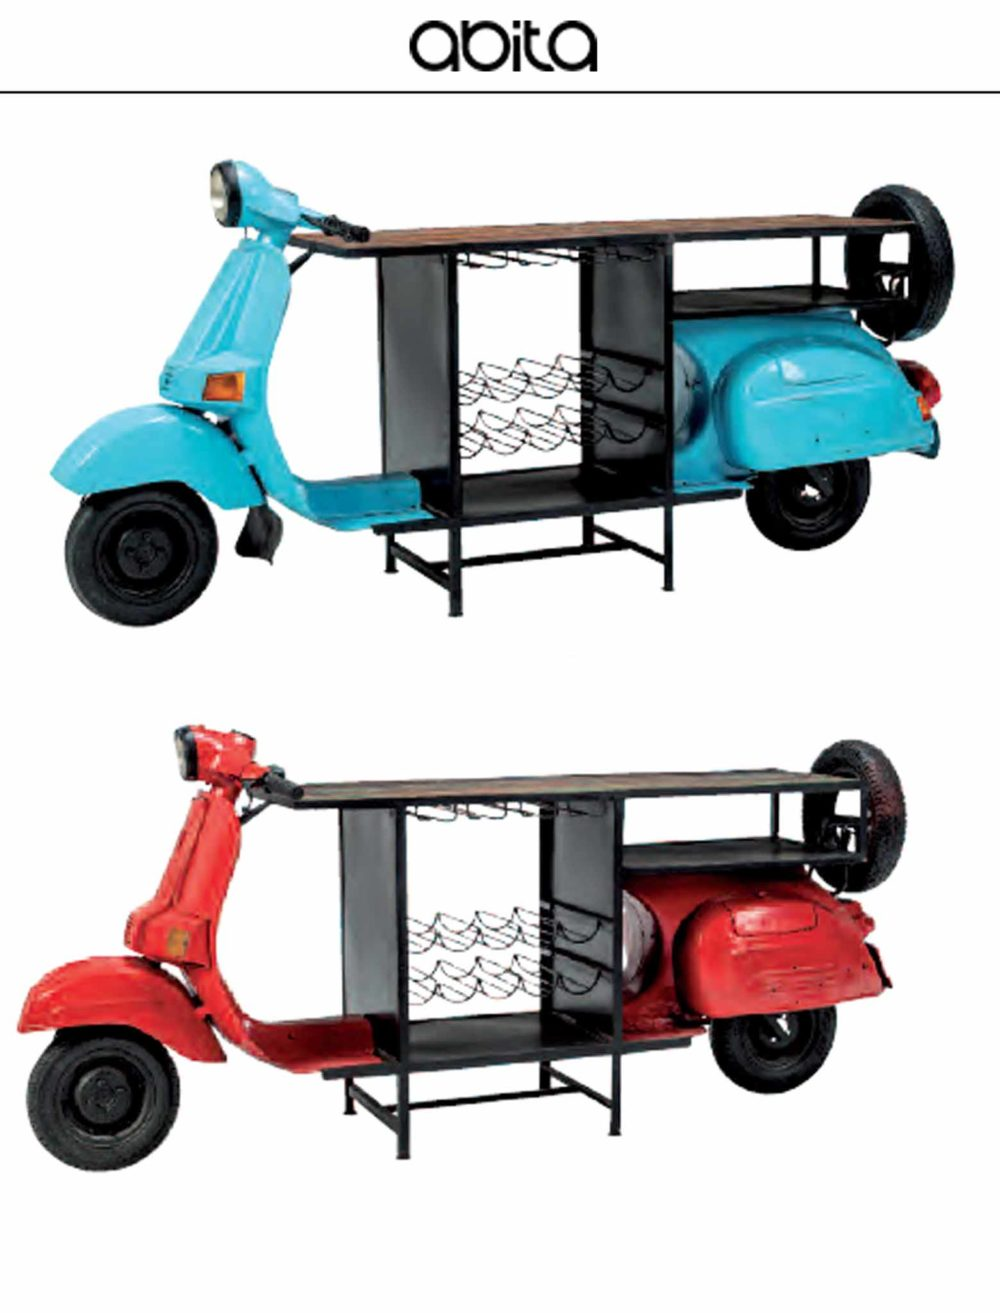 CONSOLLE BAR SCOOTER